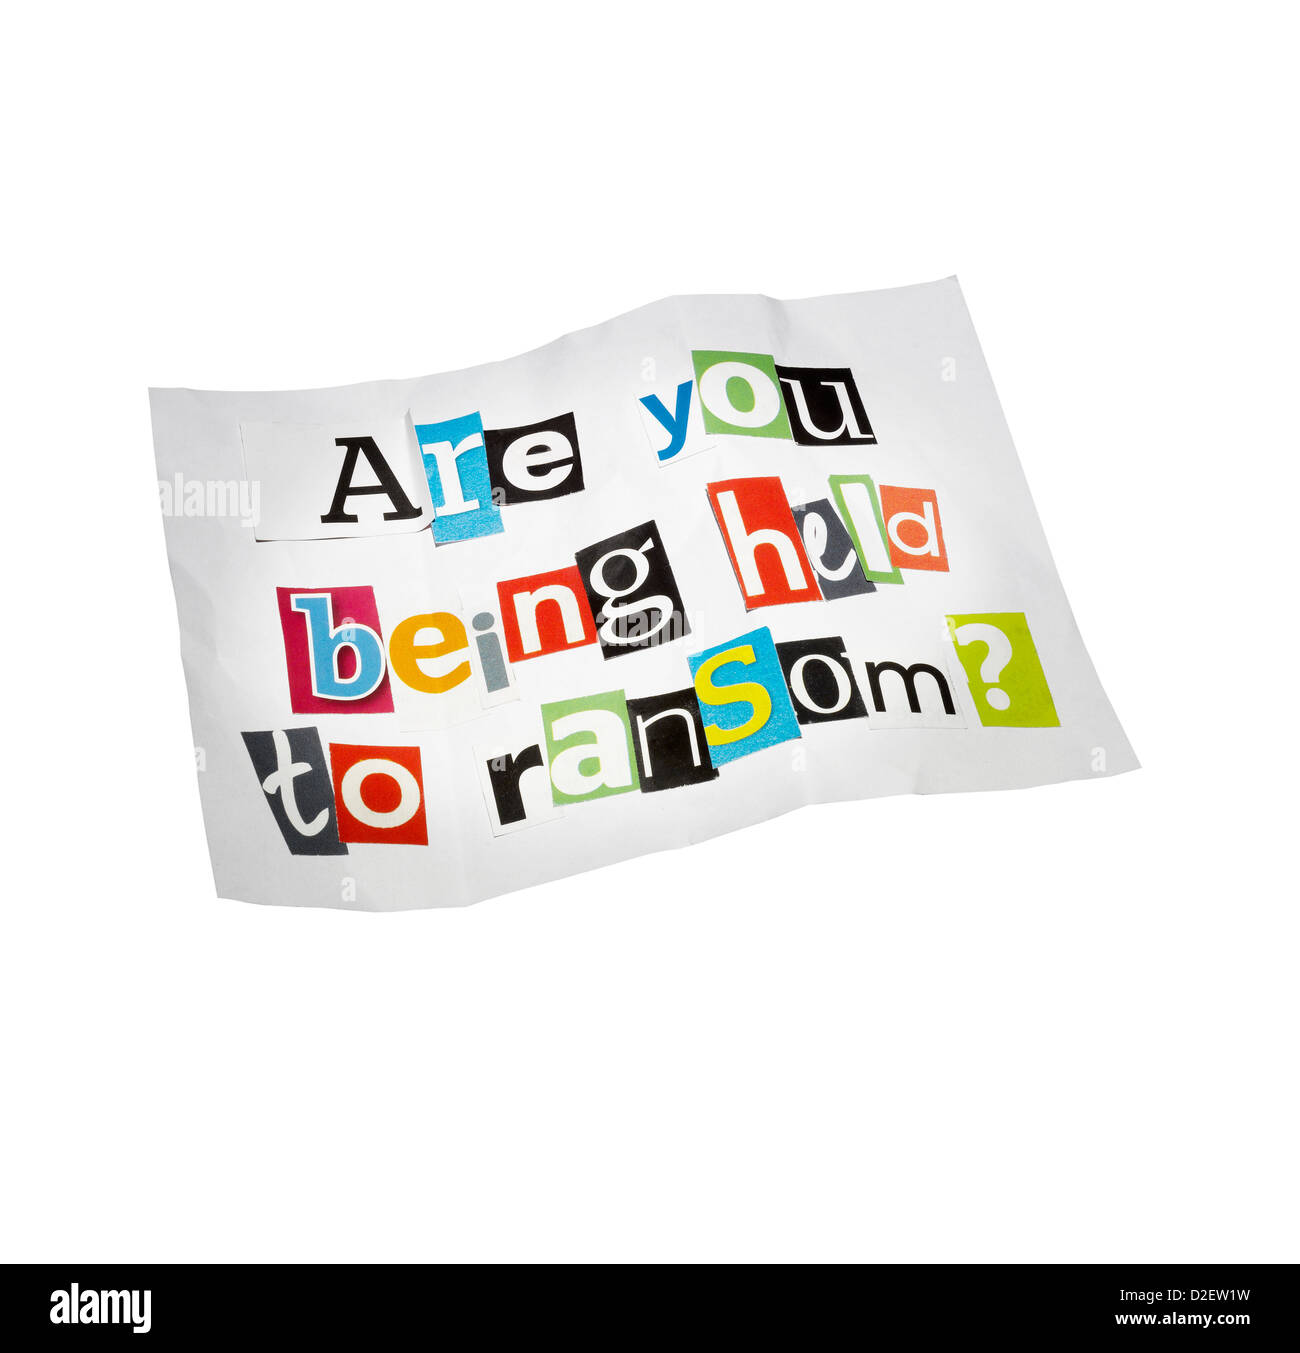 A ransom note cut out on a white background Stock Photo